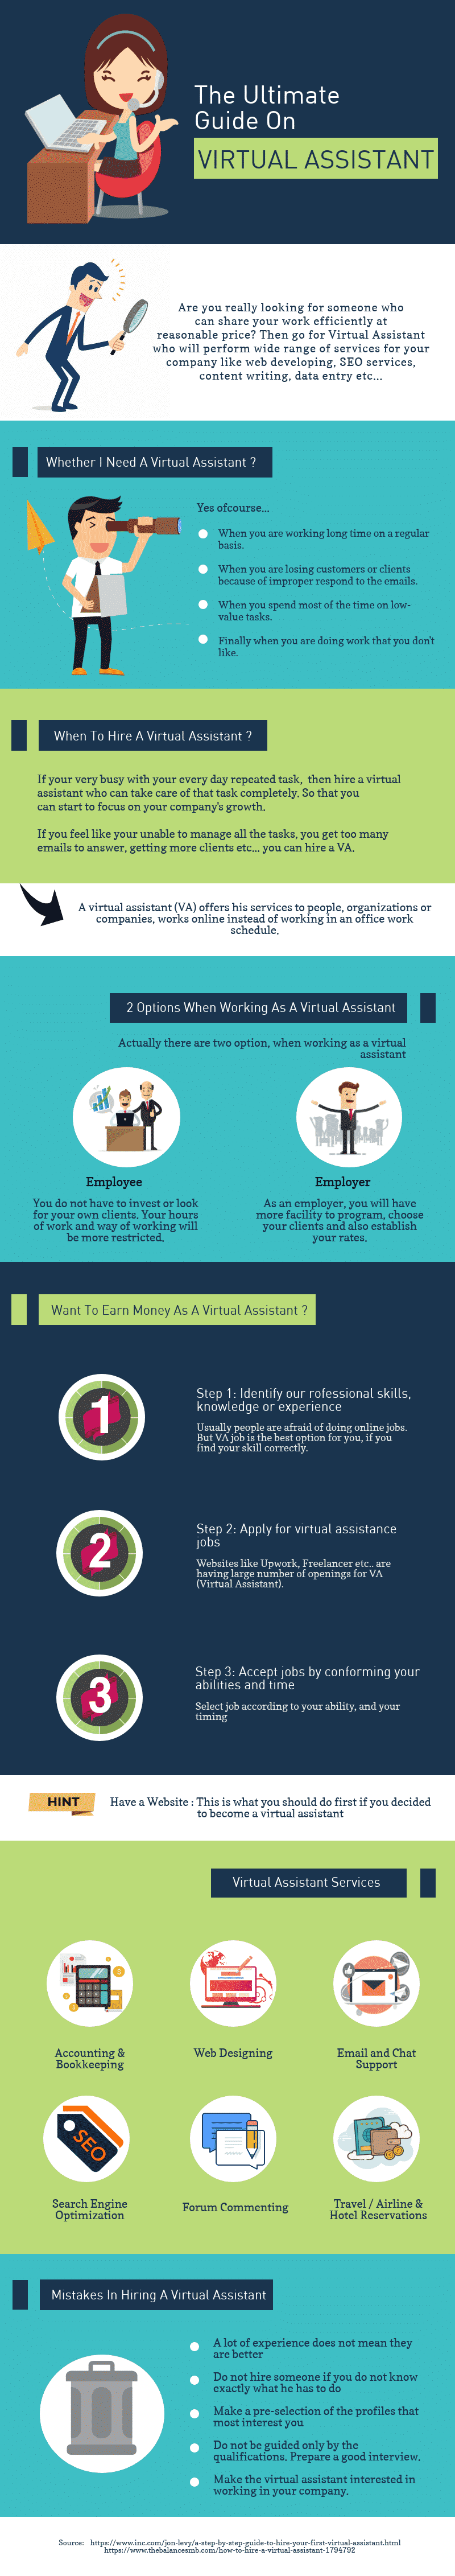 Virtual Assistants infographic